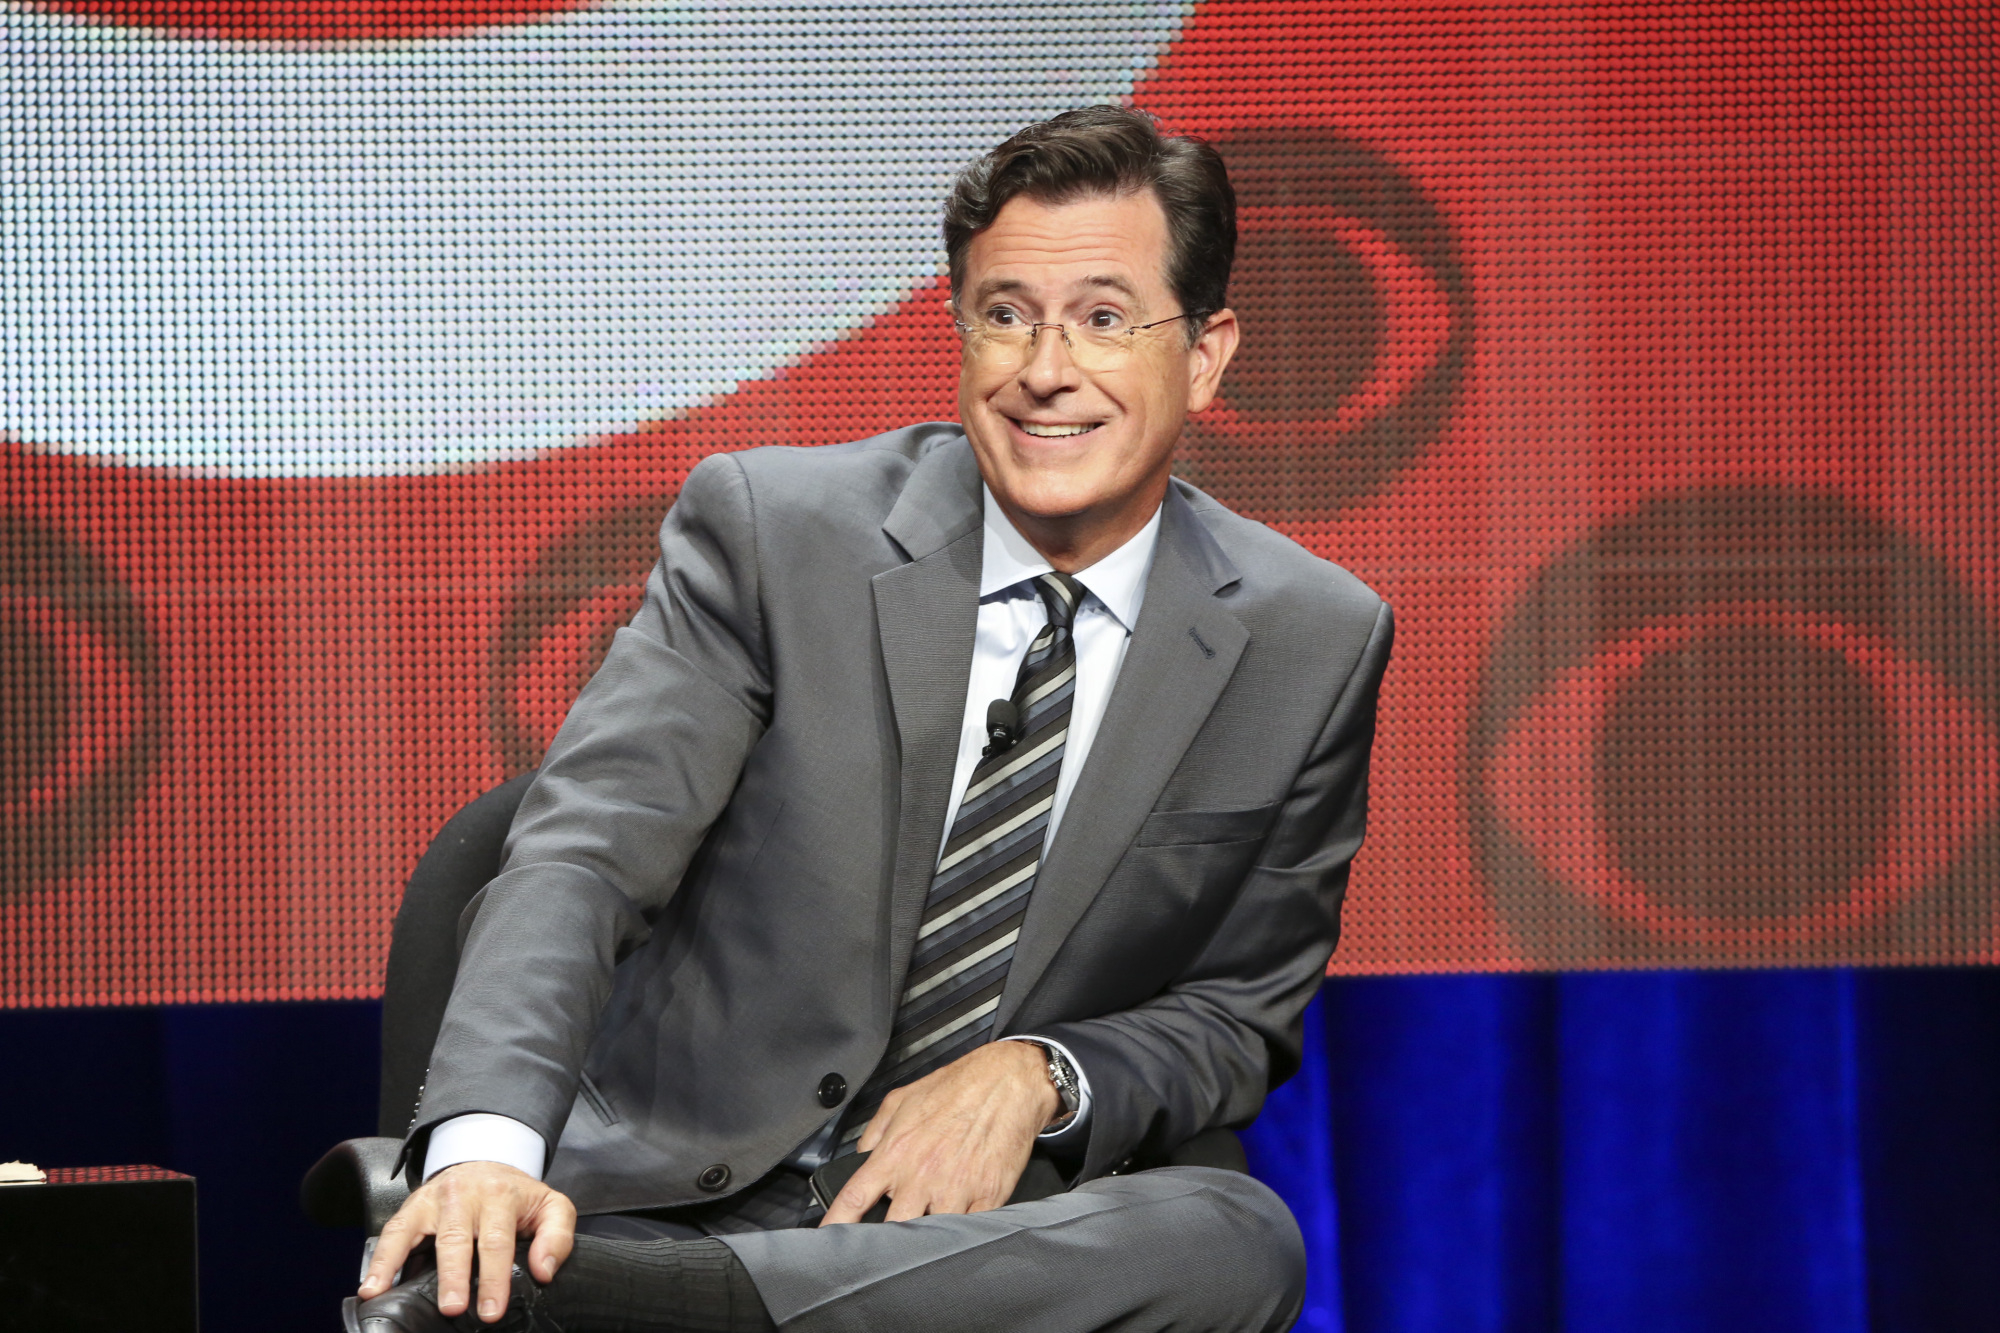 Stephen Colbert, host of  The LATE SHOW with STEPHEN COLBERT  appears at the TCA Summer Press Tour 2015 on Monday August 10, 2015 at the Beverly Hilton hotel in Los Angeles, CA.